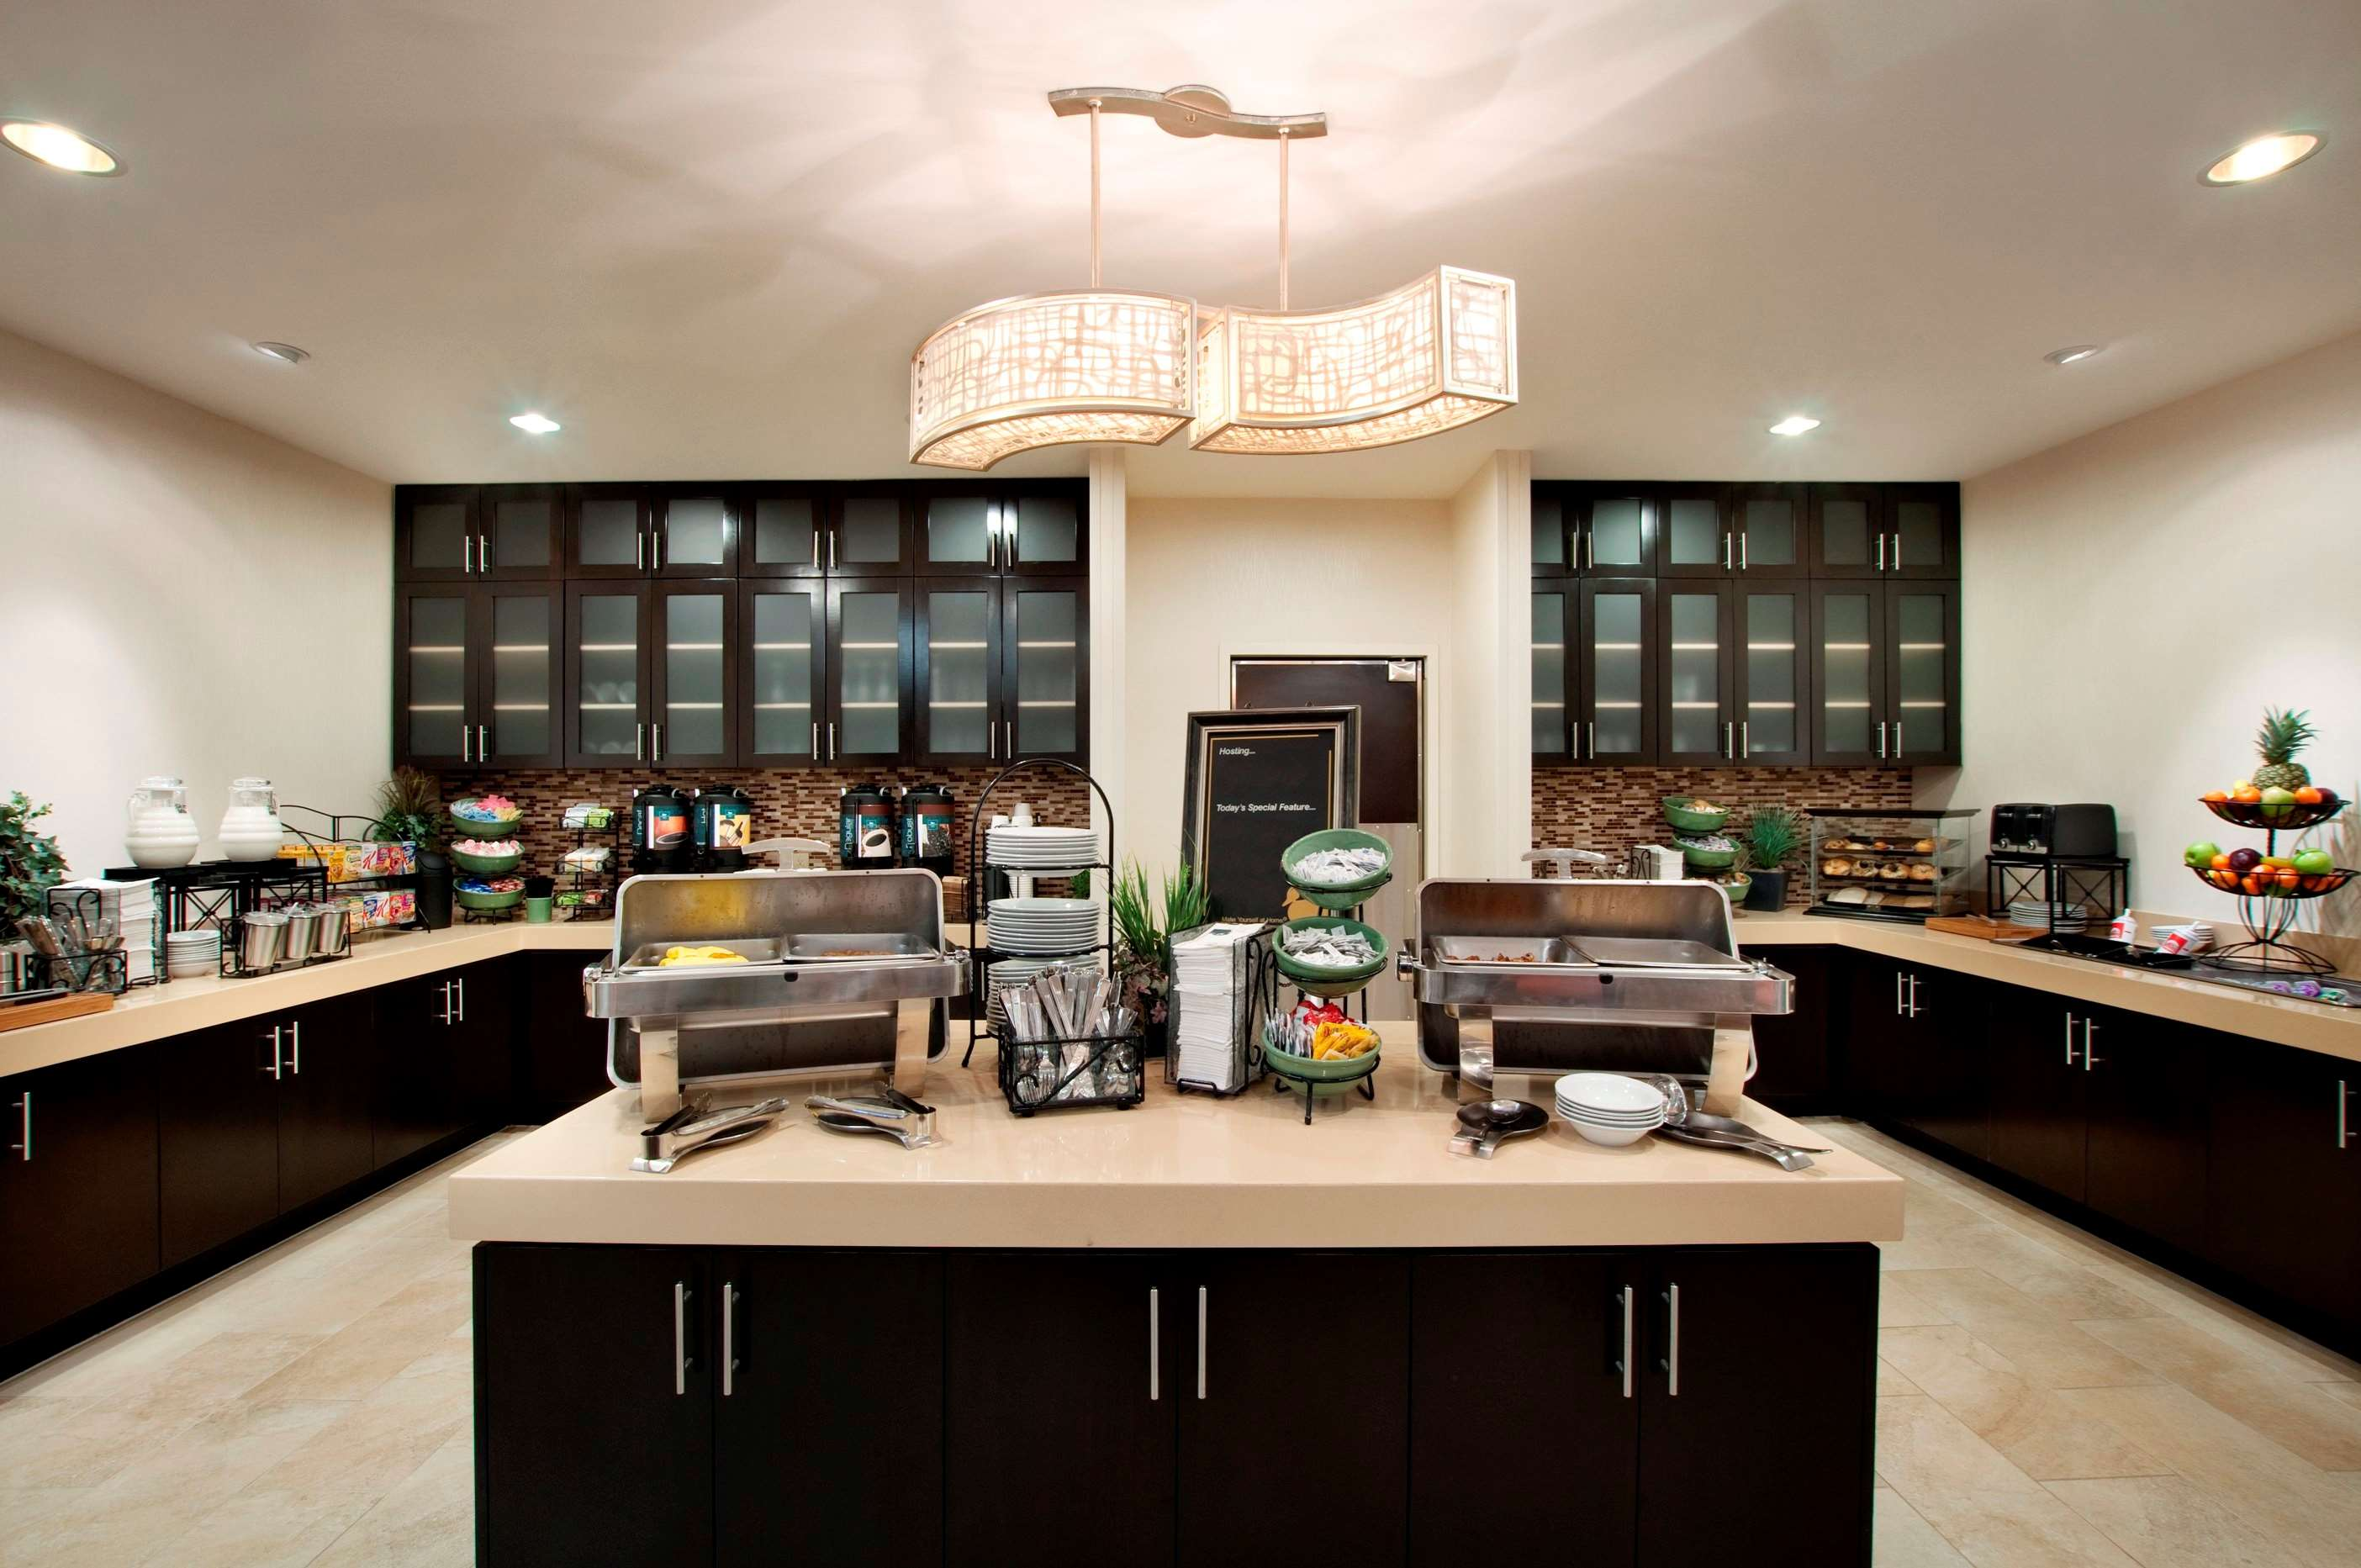 Homewood Suites by Hilton Fort Worth West at Cityview, TX image 2